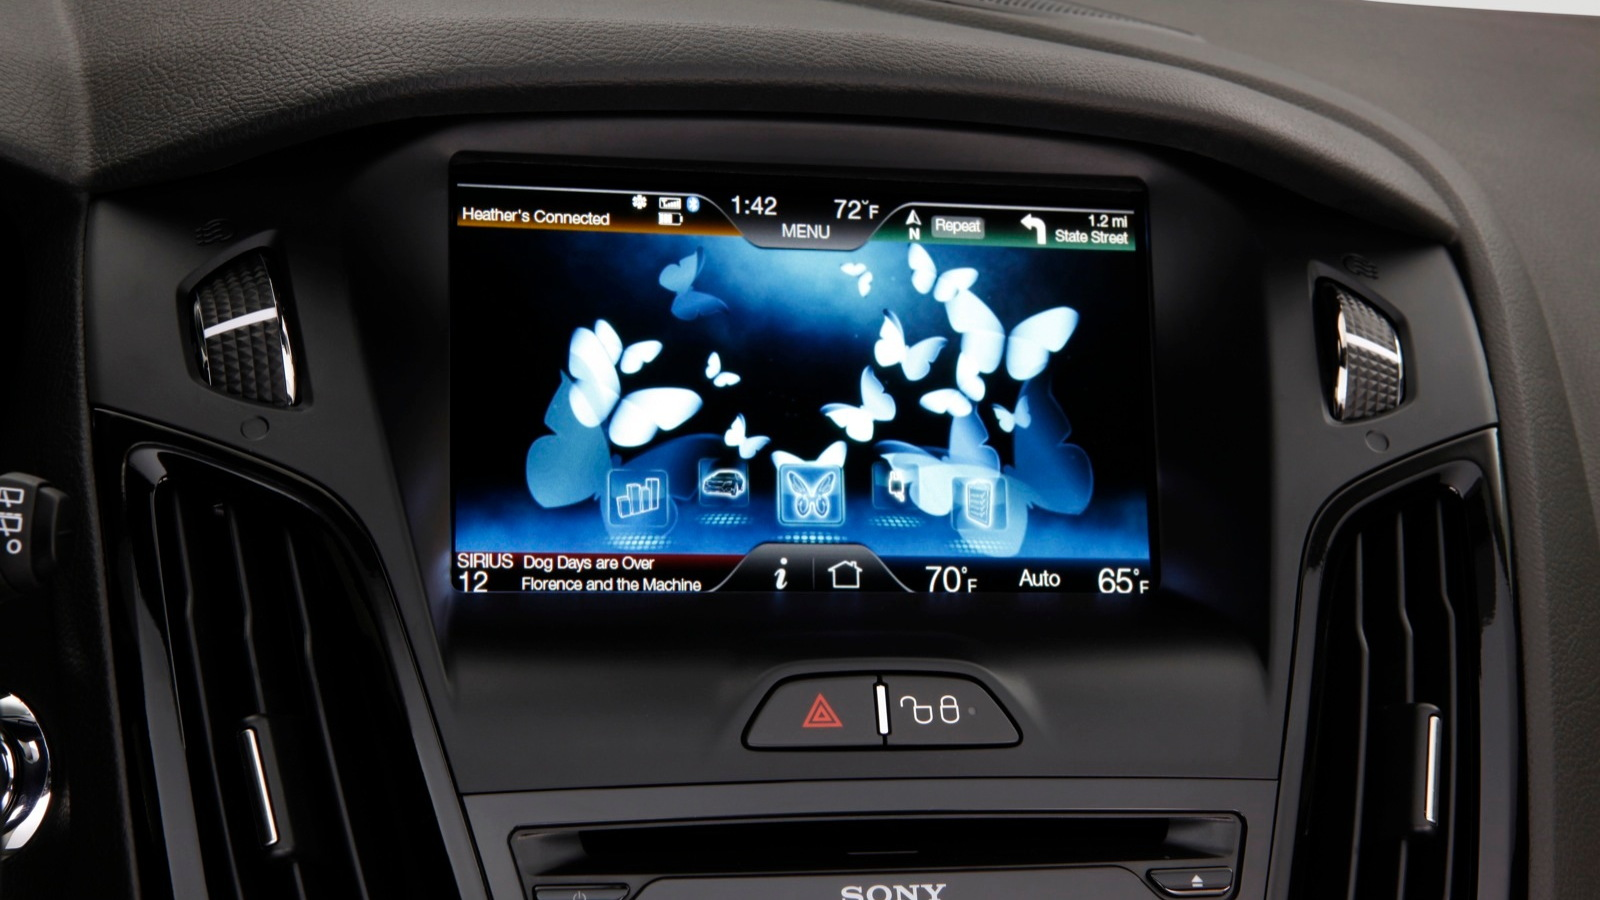 MyFord Touch, in 2012 Ford Focus Electric